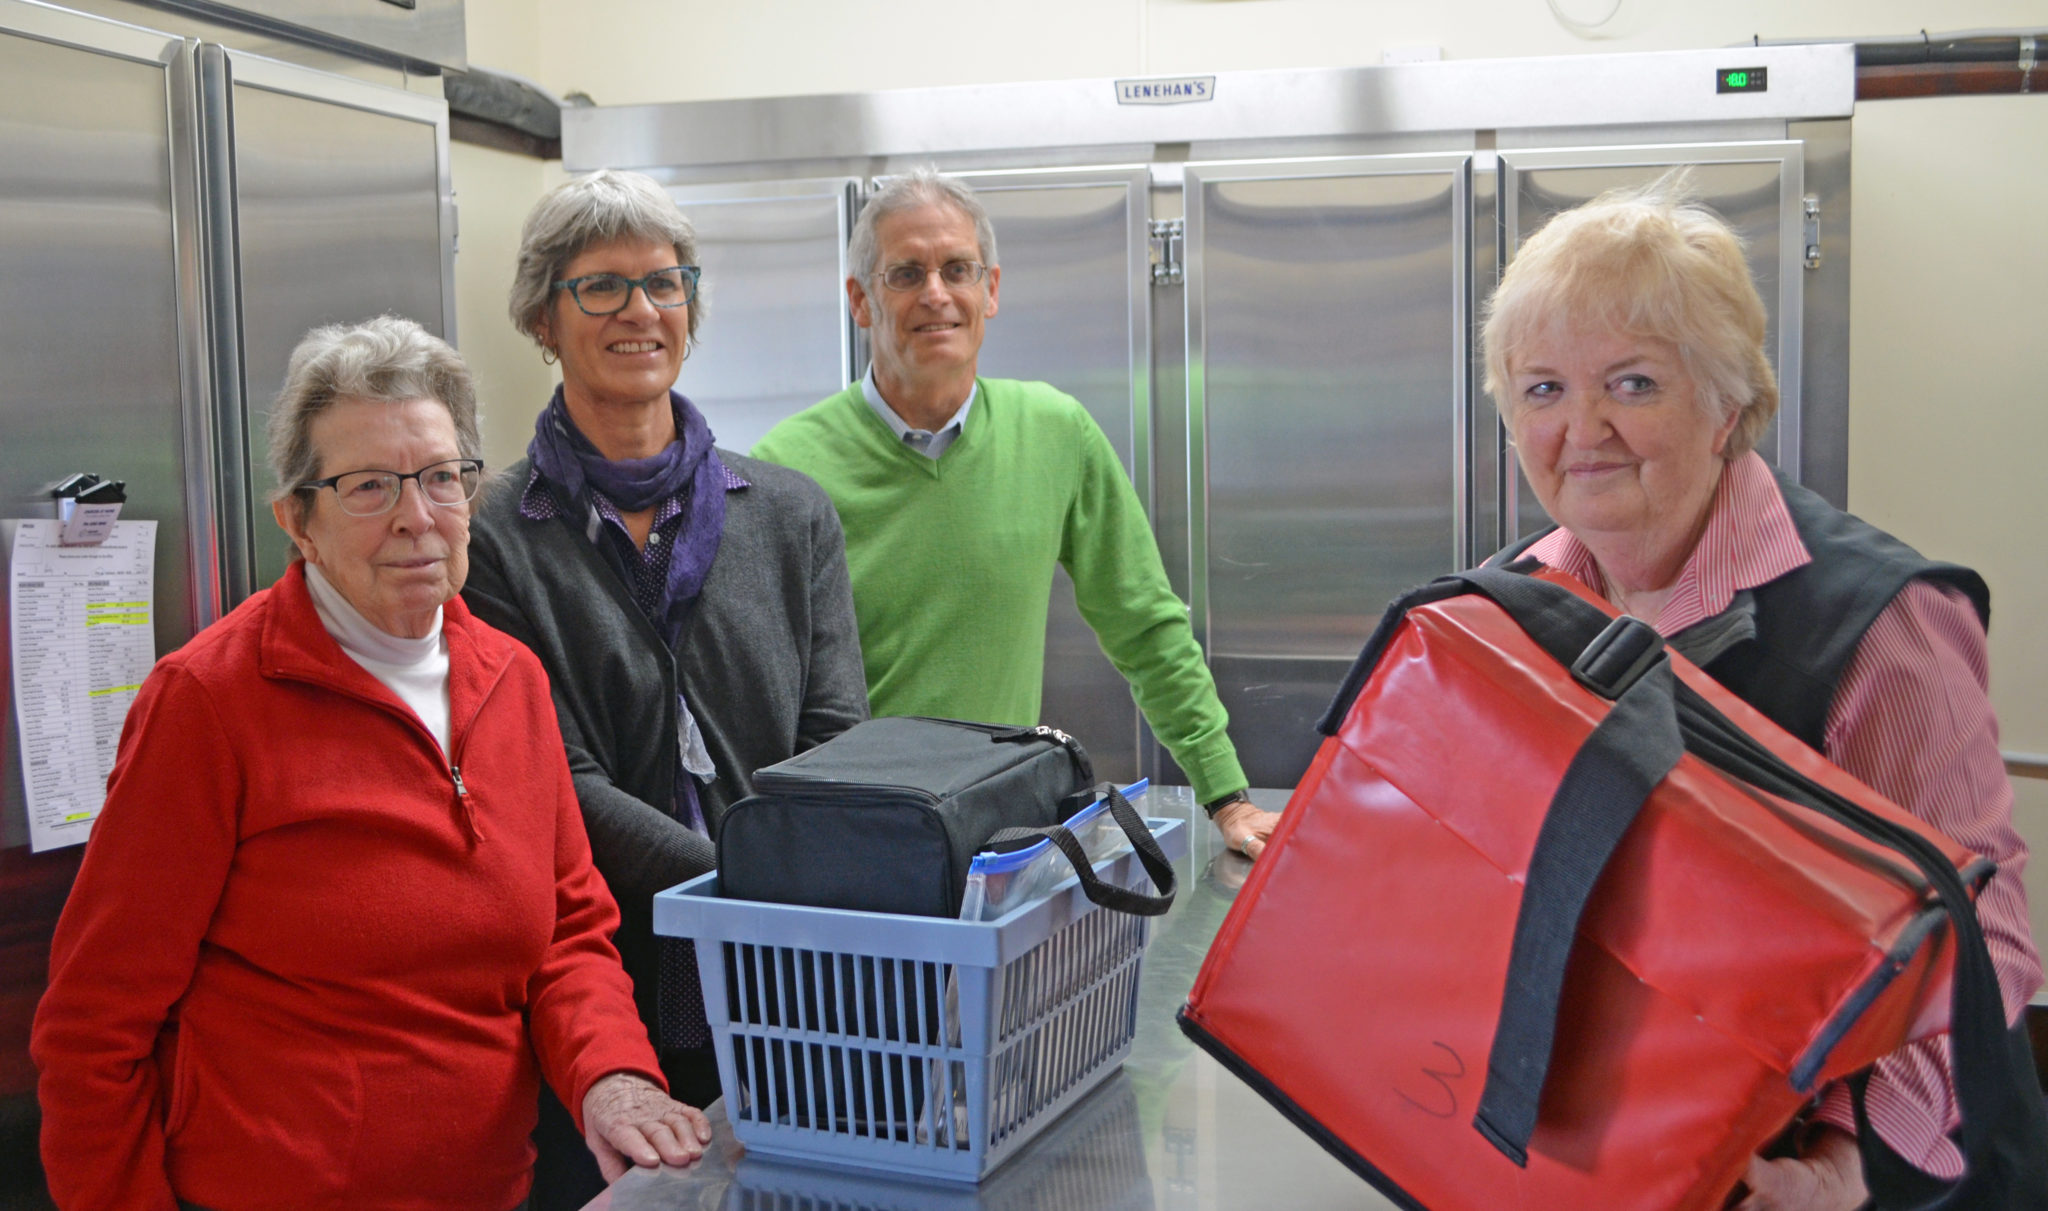 Client Anne, with volunteer Kathryn, Cr Stephen Nugent and Council employee Sheryl Jenkins